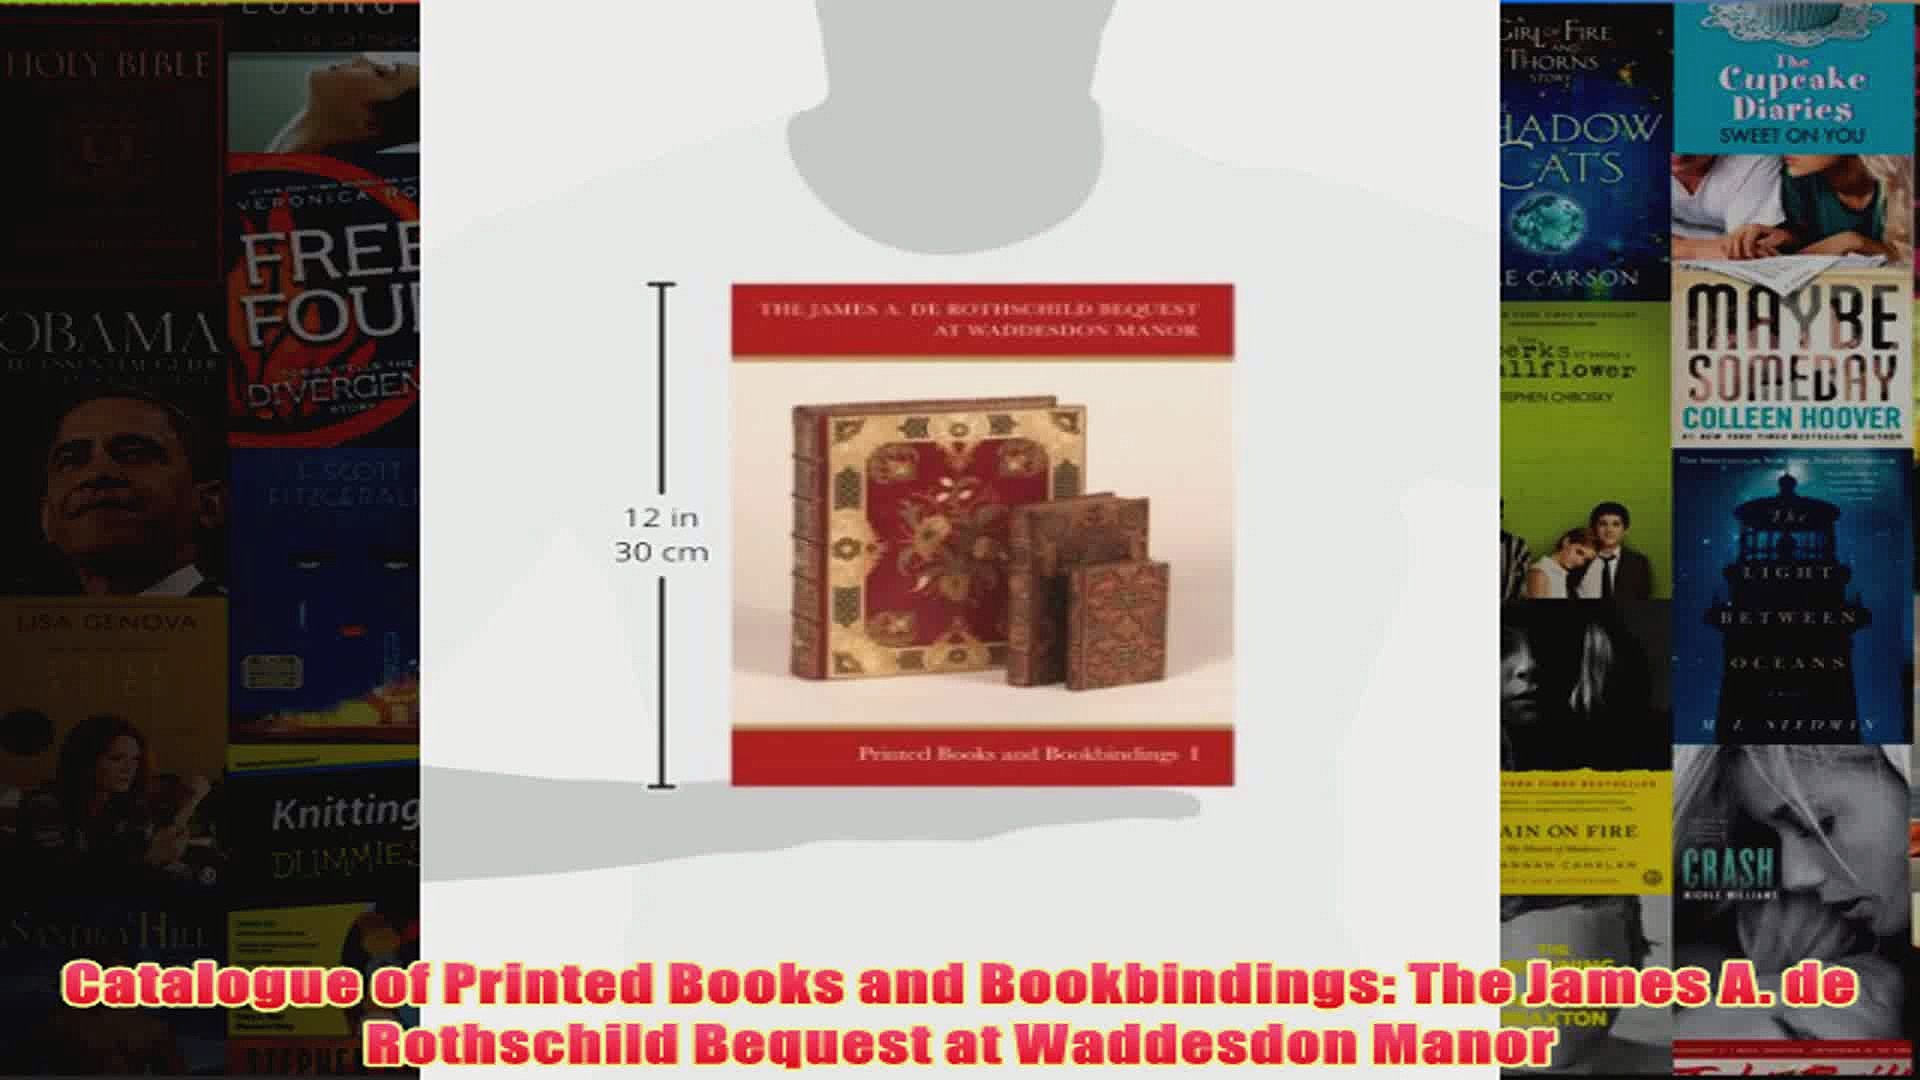 Catalogue of Printed Books and Bookbindings The James A de Rothschild Bequest at